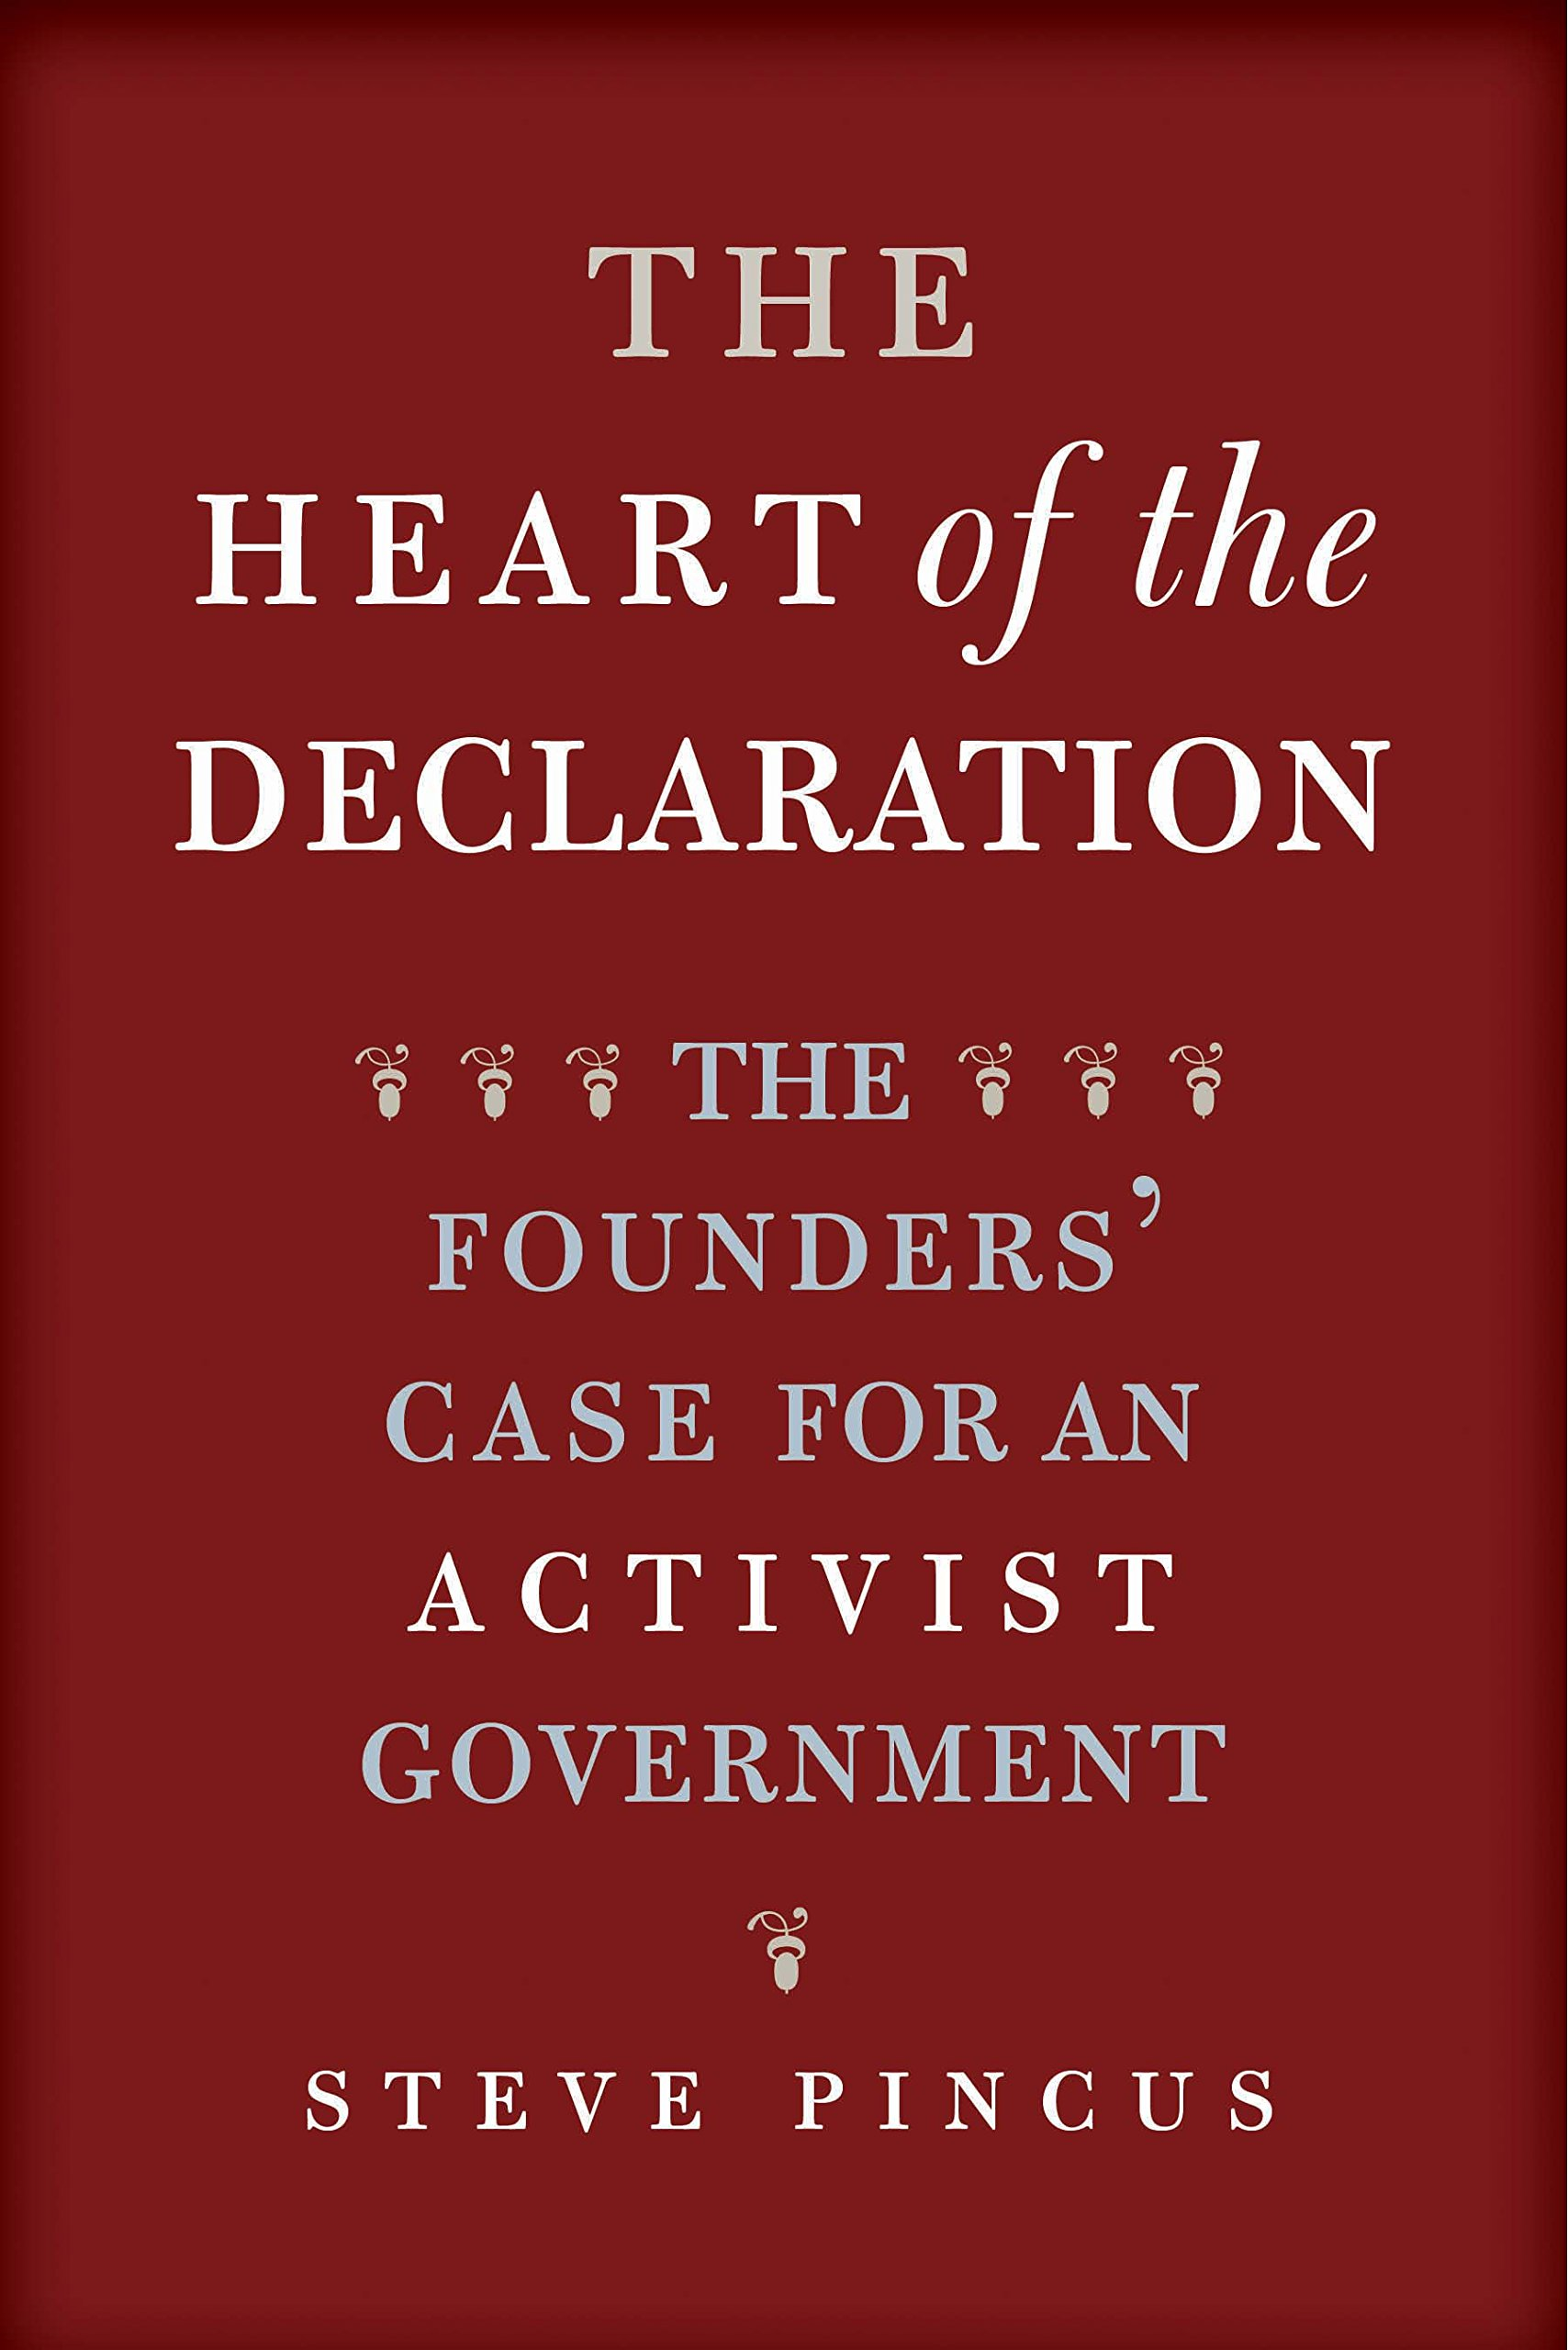 Download The Heart of the Declaration: The Founders' Case for an Activist Government (The Lewis Walpole Series in Eighteenth-Century Culture and History) PDF